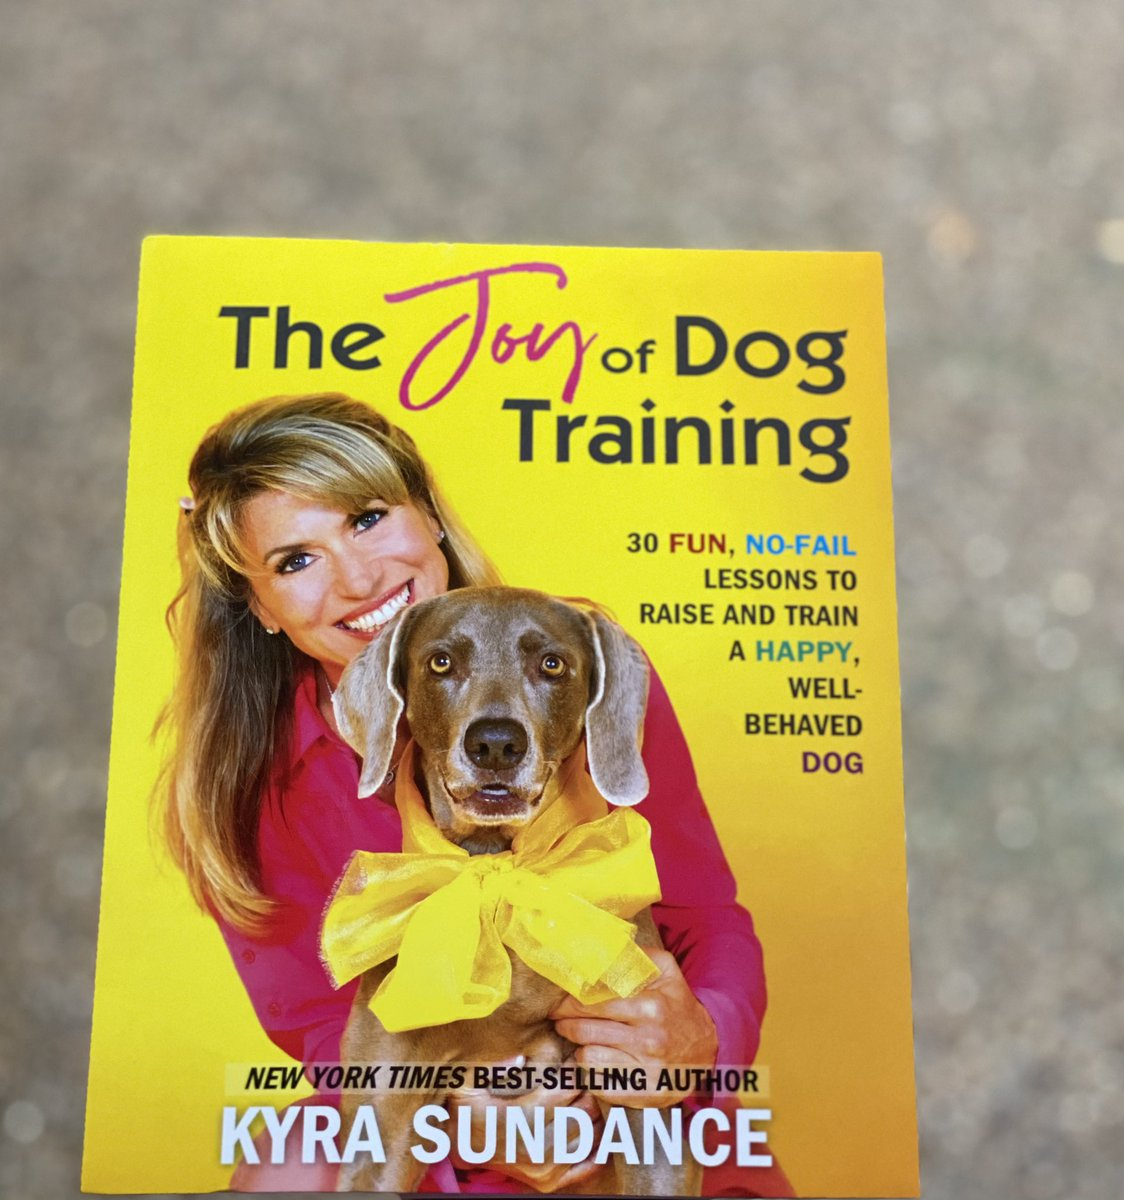 Gift idea for those getting a dog this Christmas!! AD    #doglovers #dogtraining #giftsfordoglovers #giftideas #doglovergifts #WednesdayMotivation